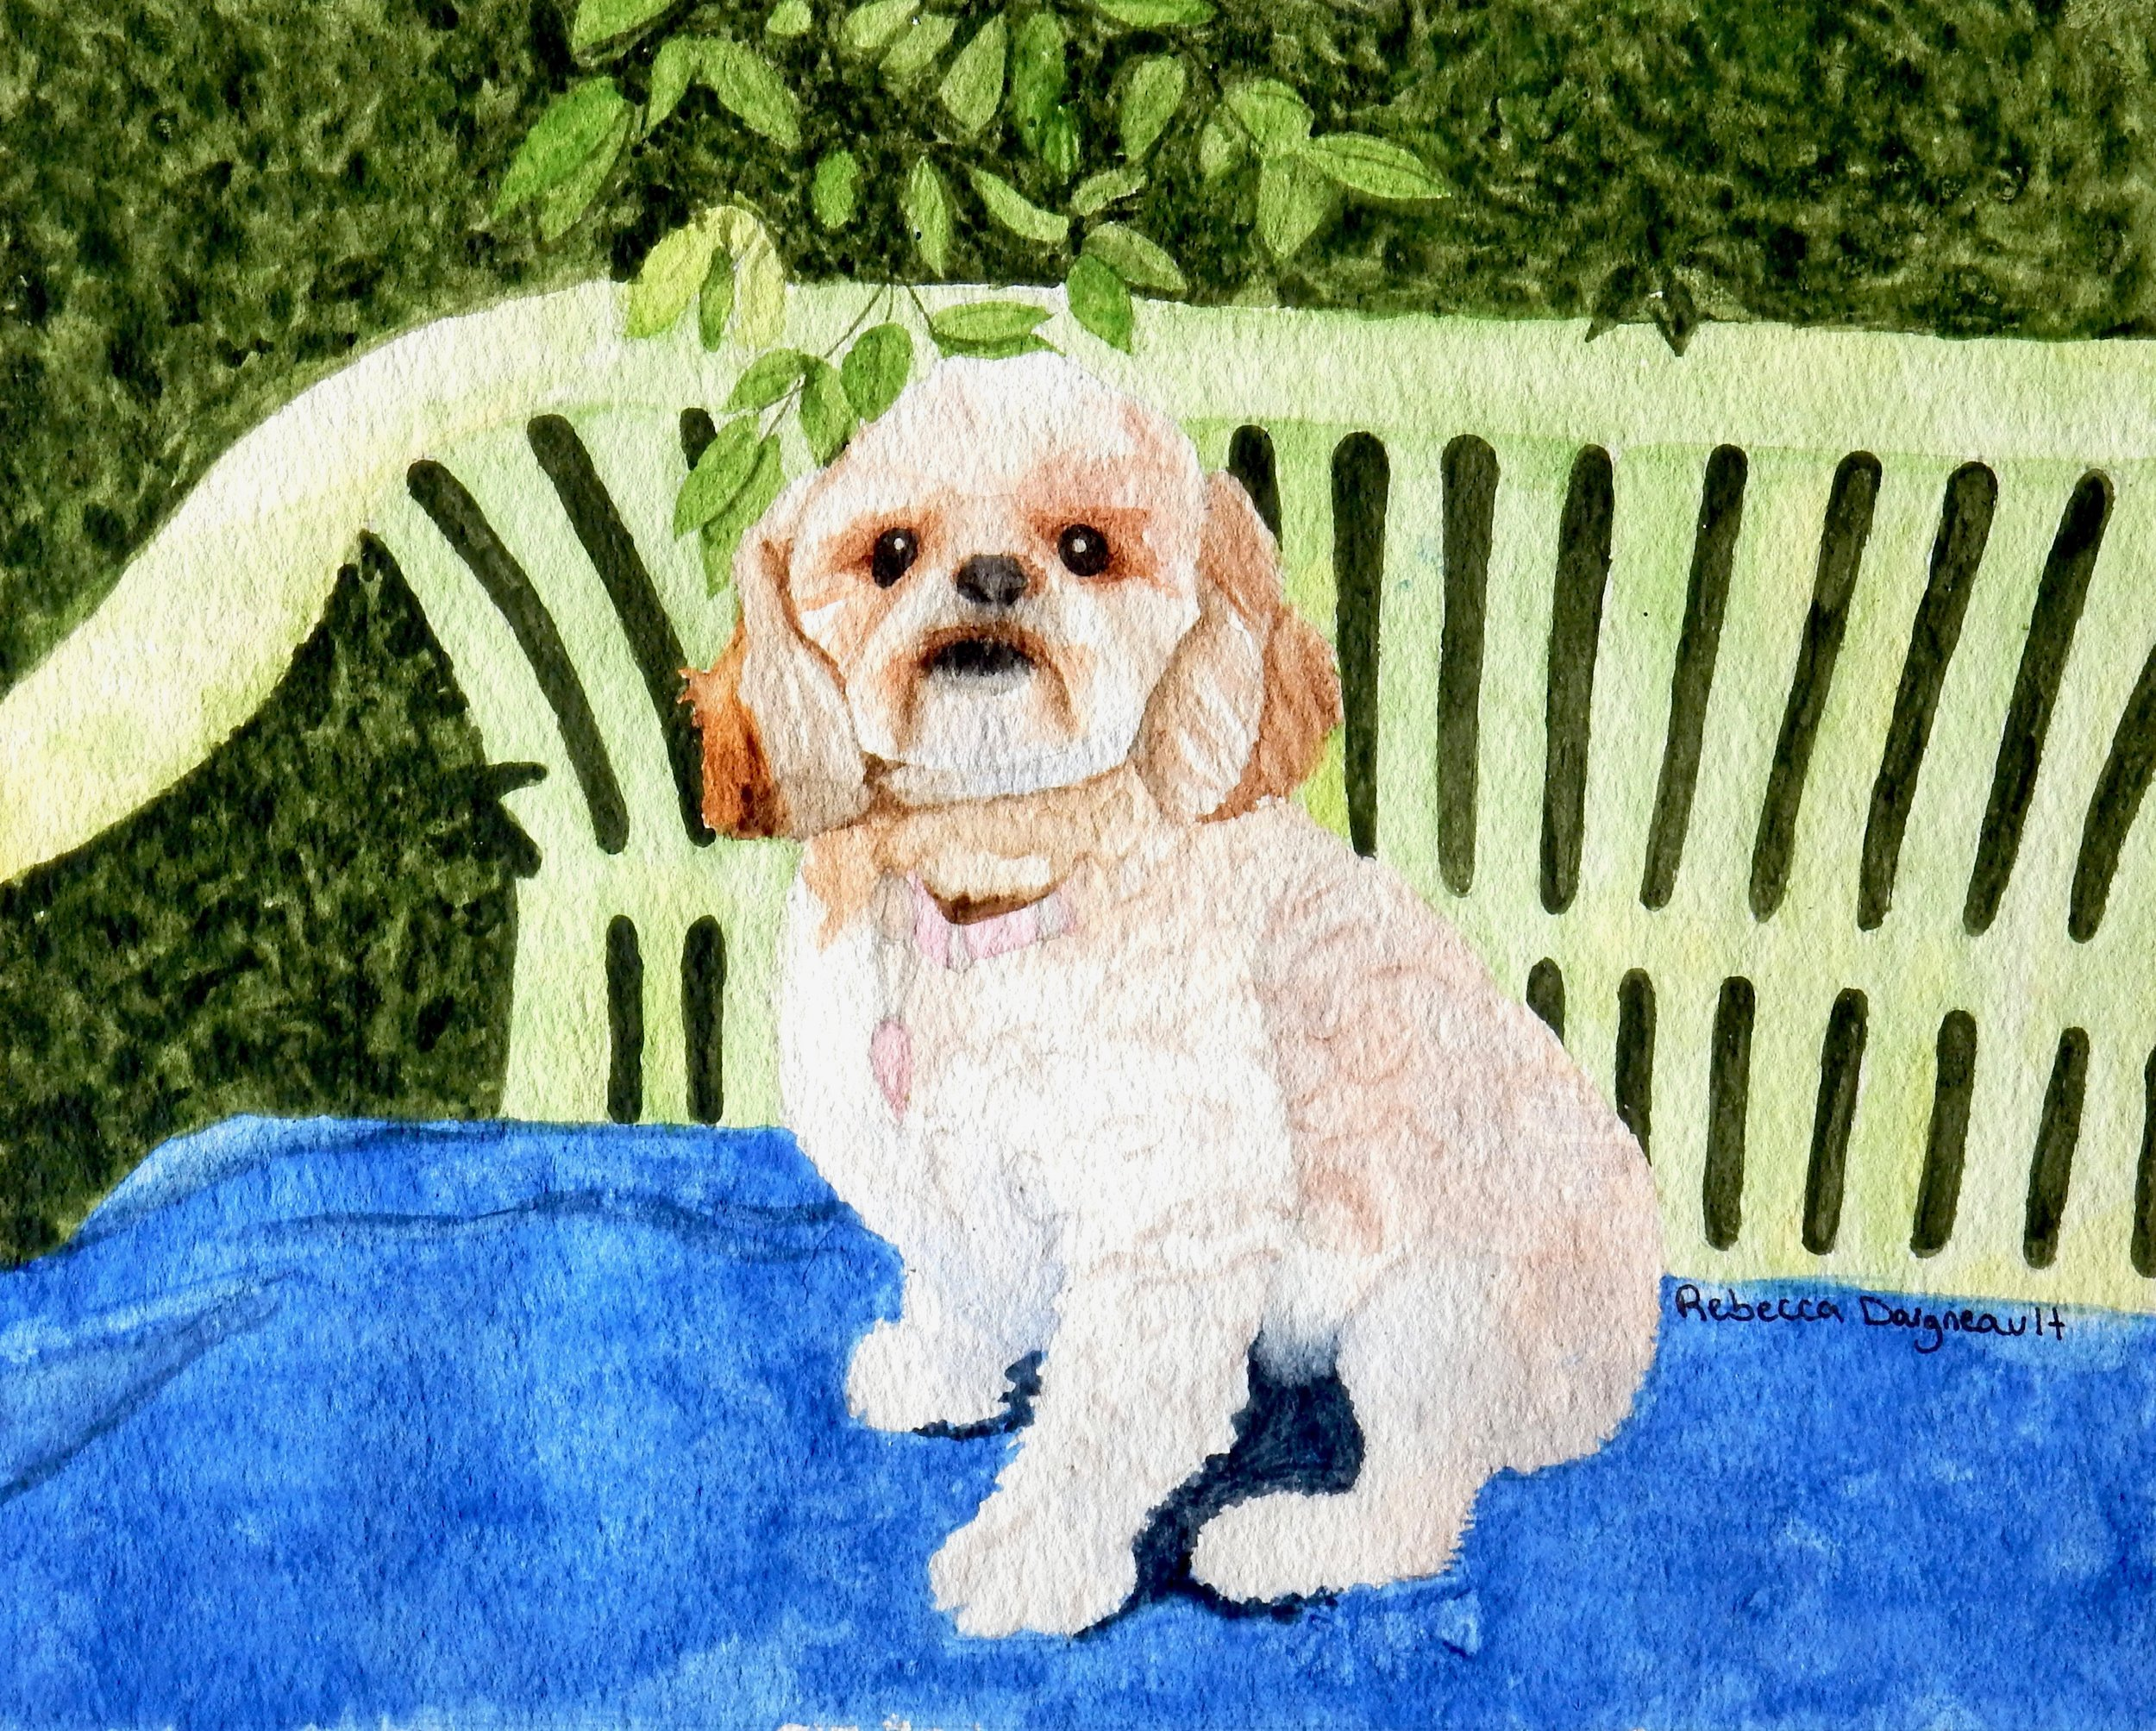 Rebecca Daigneault.watercolor.A Fluffy Friend